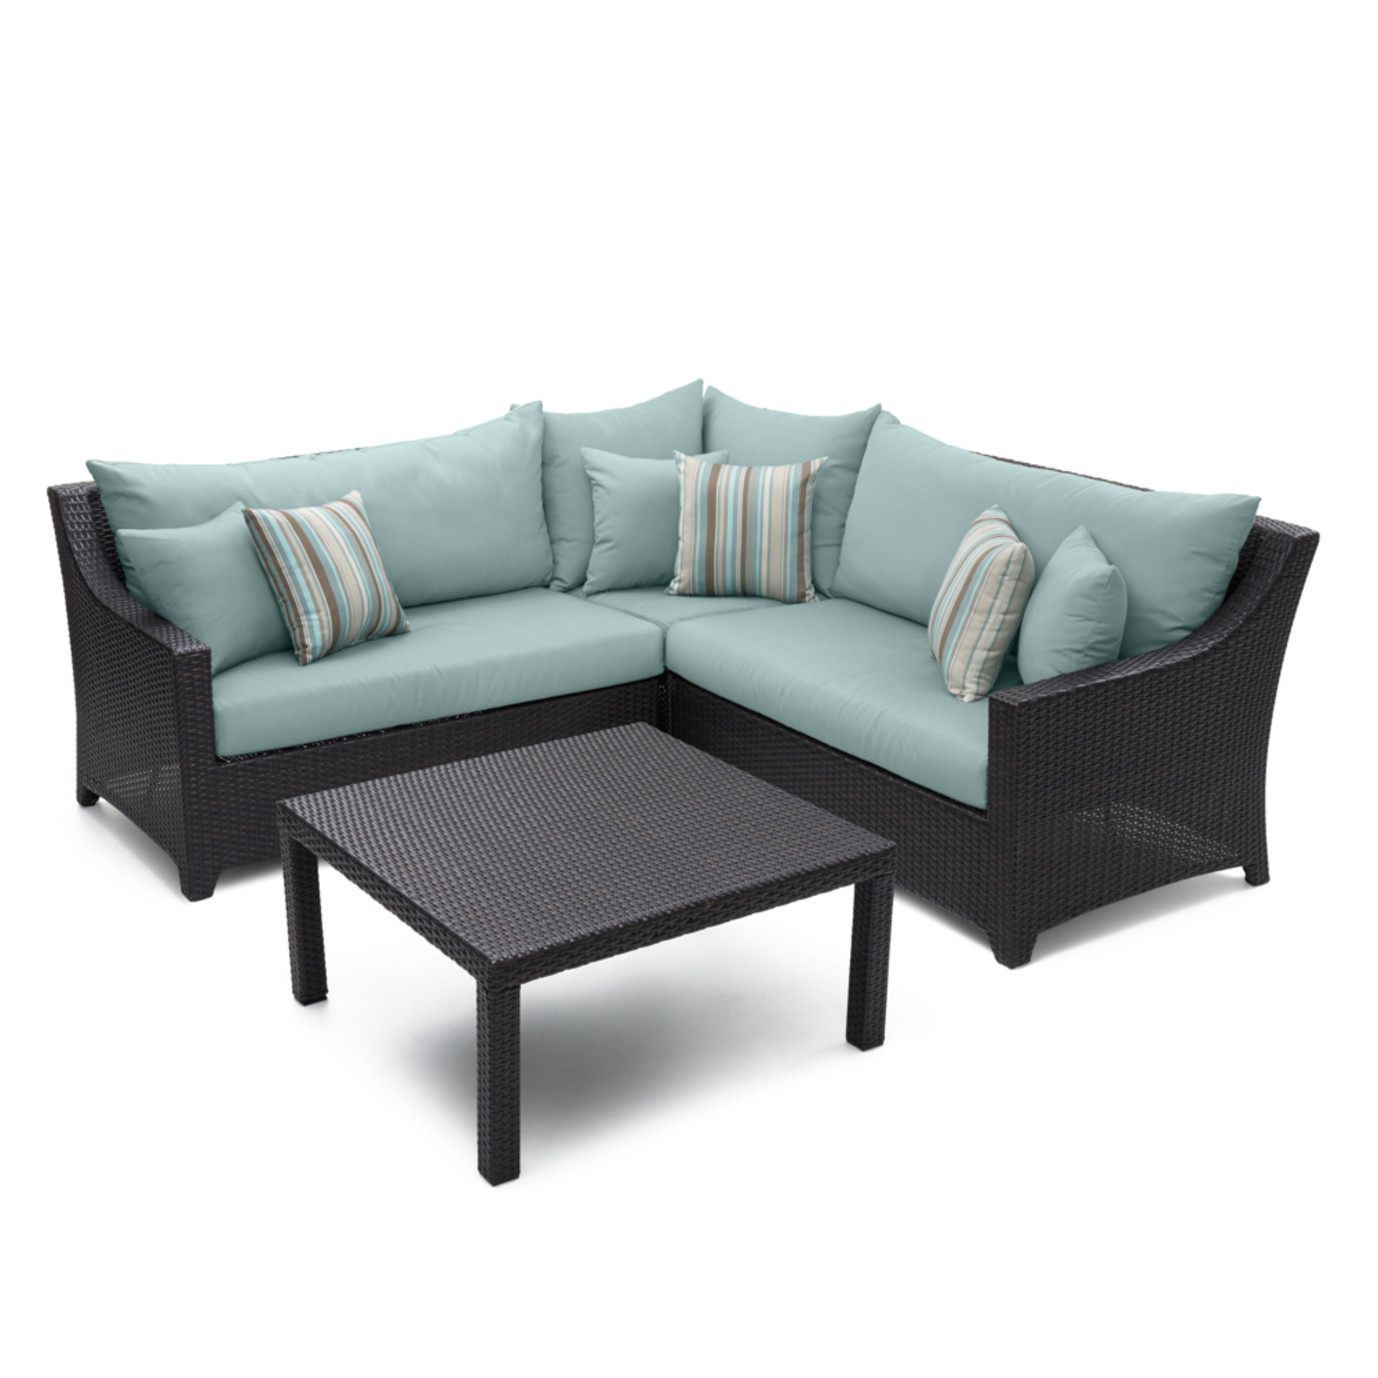 Deco™ 4pc Sectional and Table - Bliss Blue